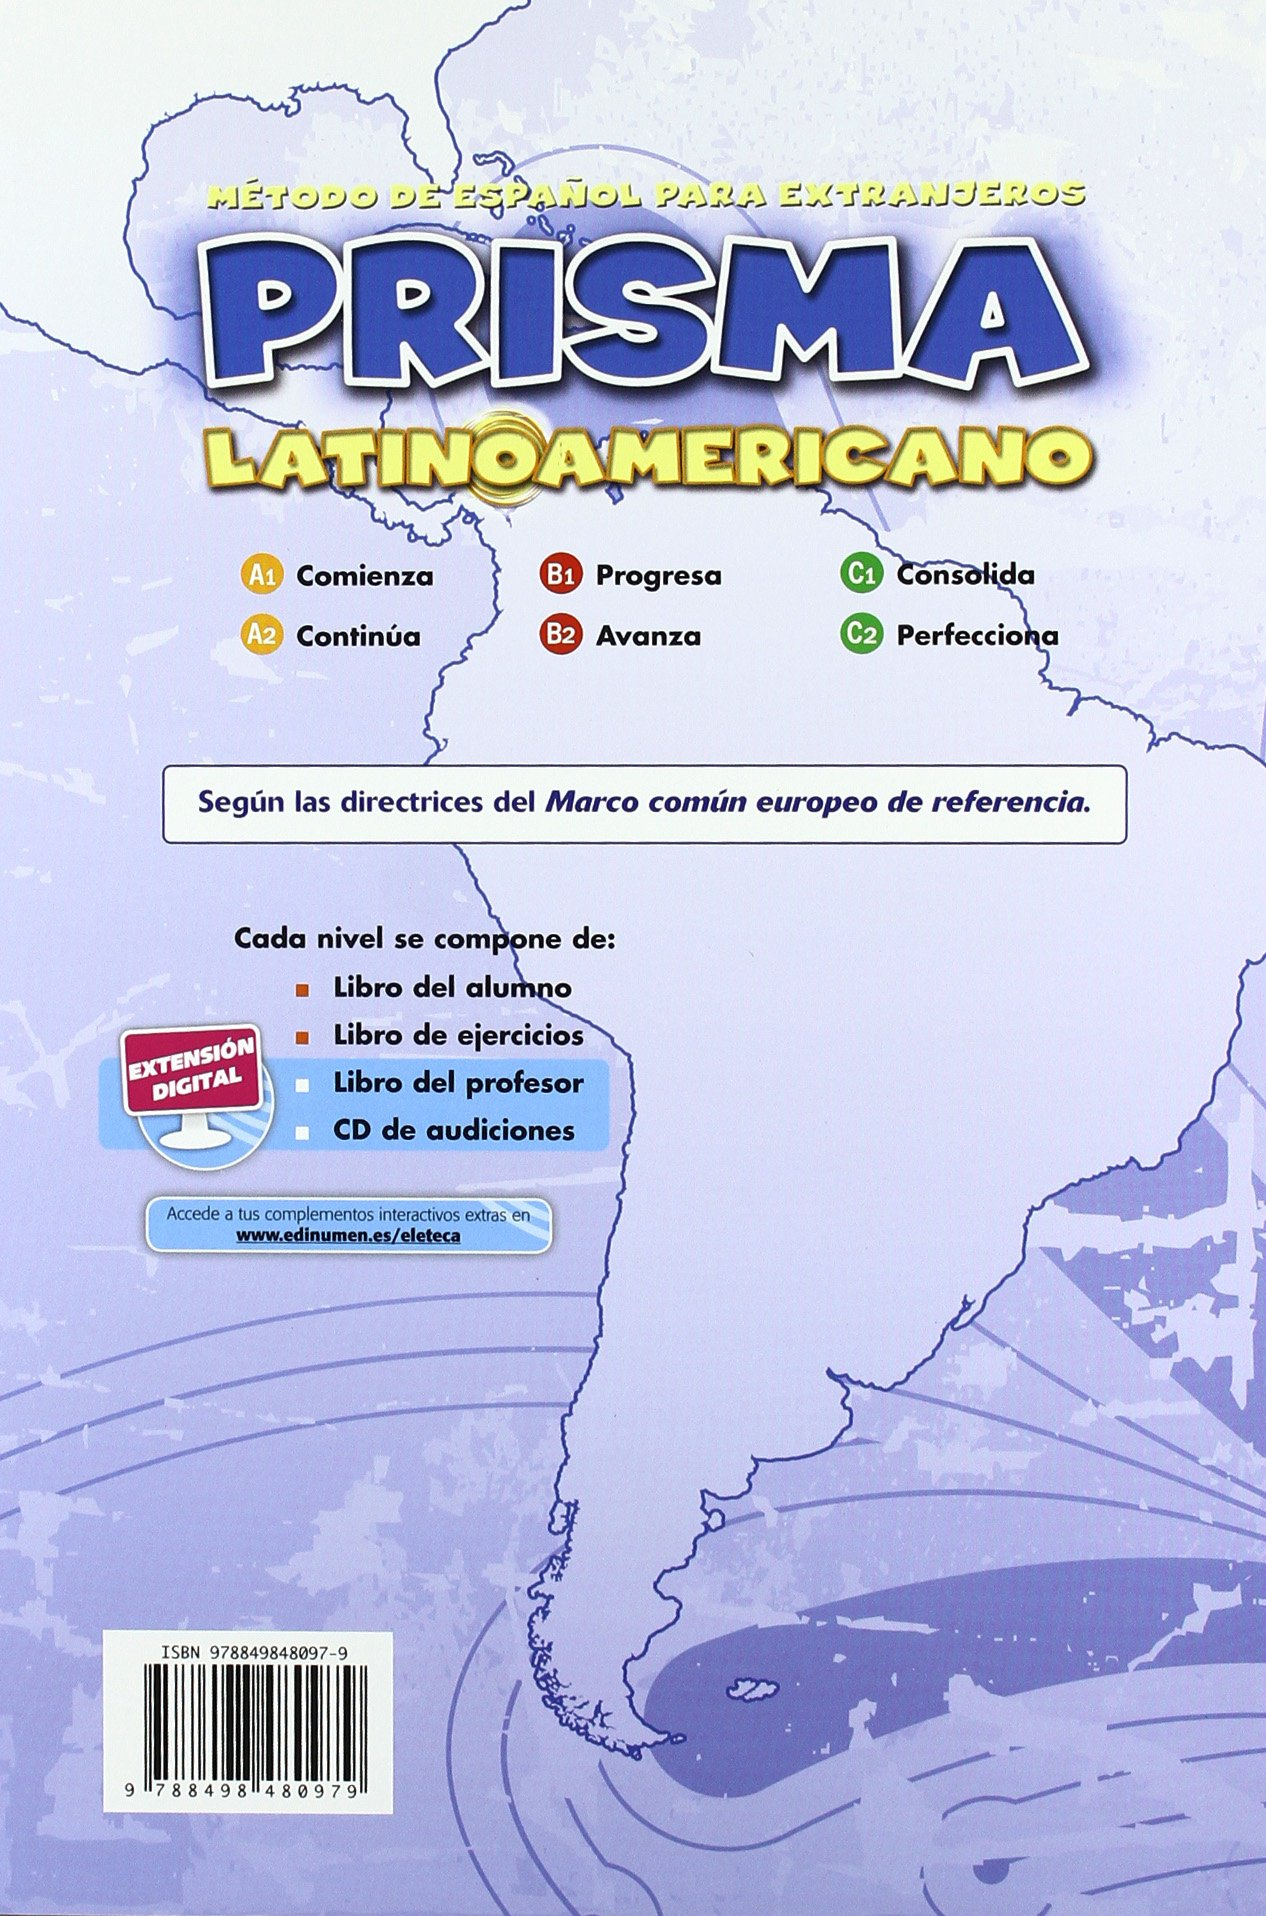 Buy prisma latinoamericano a1 student book metodo de espanol buy prisma latinoamericano a1 student book metodo de espanol para extranjeros spanish language for foreigners book online at low prices in india fandeluxe